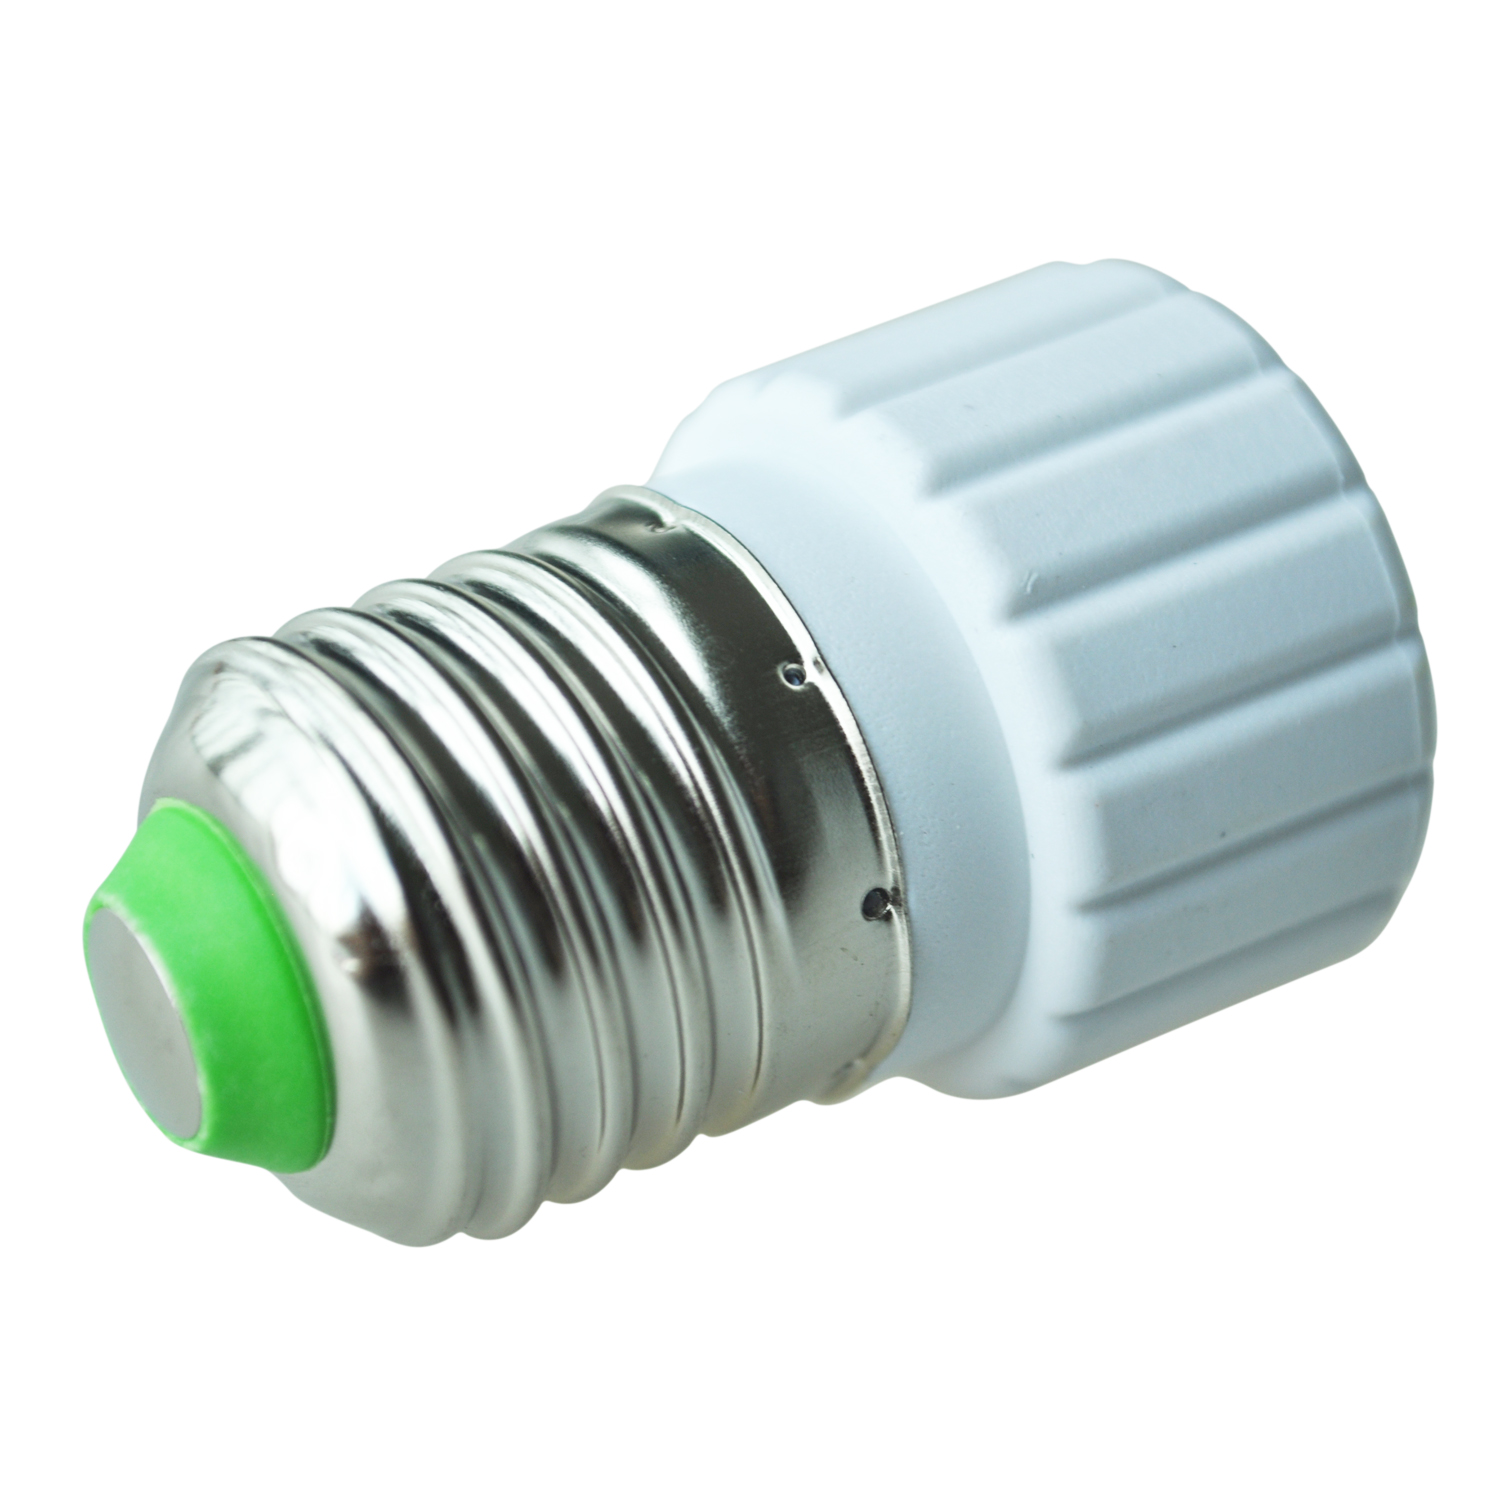 E27 to gu10 extend base led light bulb lamp adapter converter screw socket hp ebay Light bulb socket